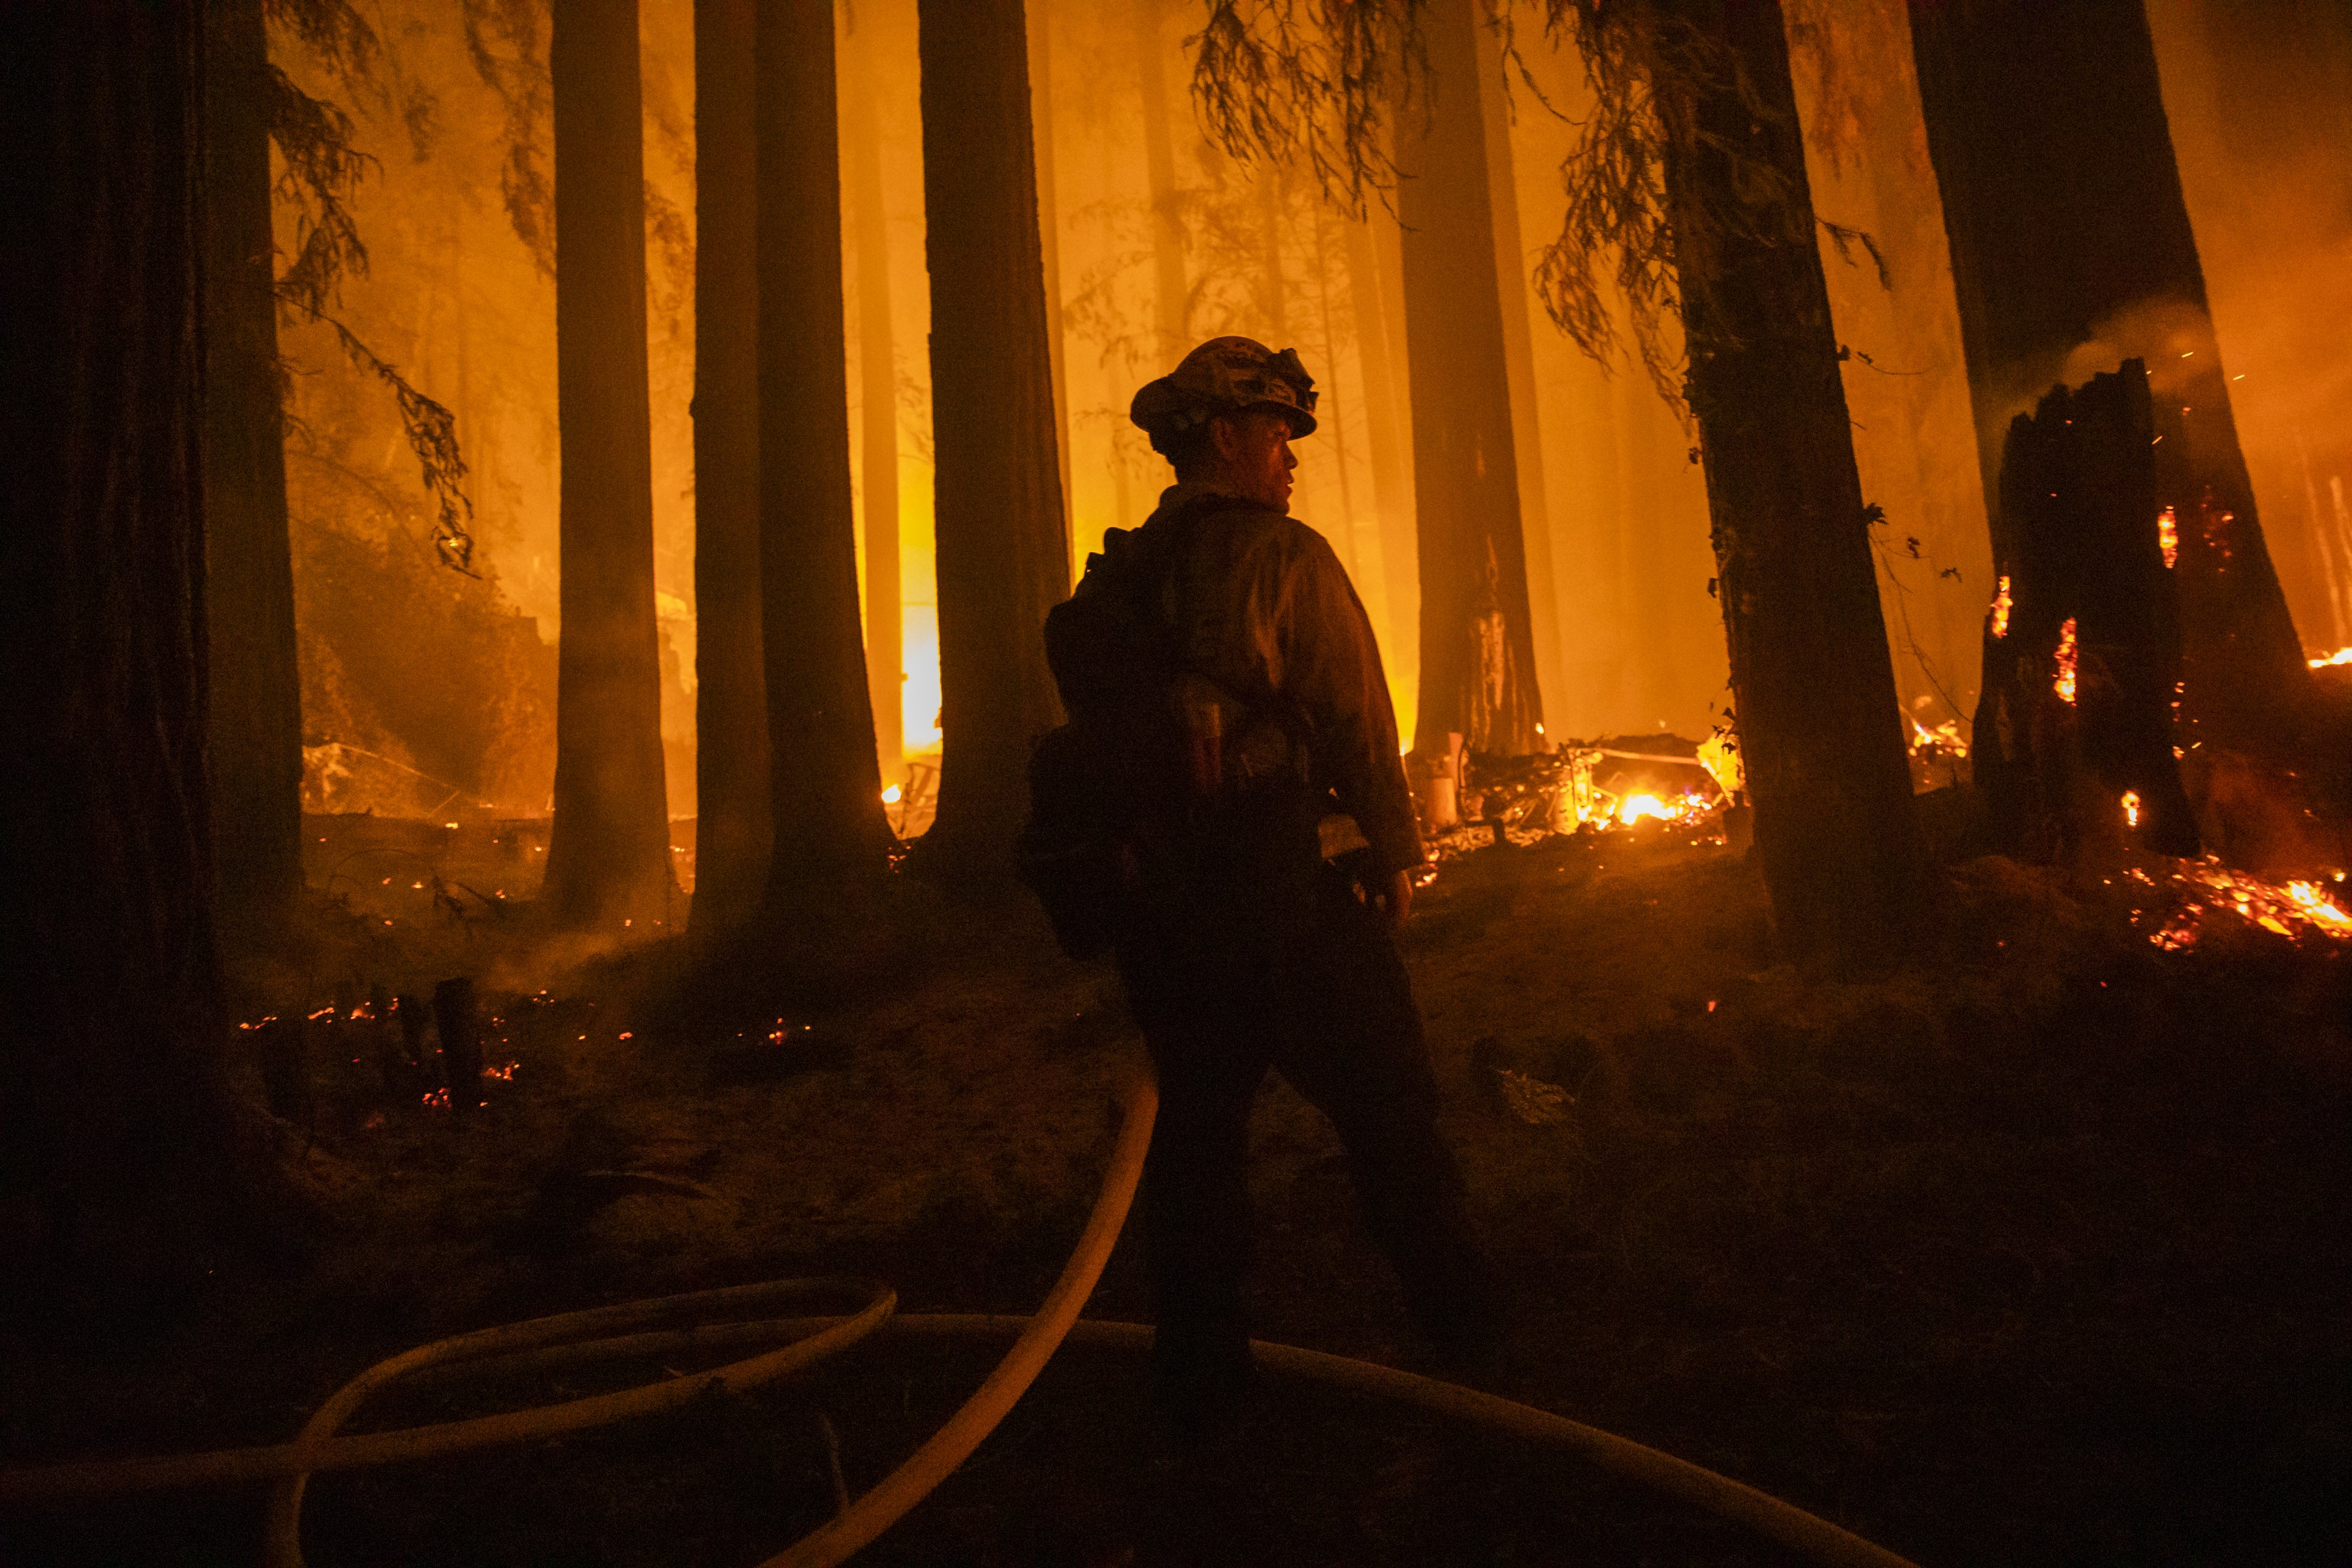 A firefighter with the Jameson Creek CDF station fights a fire on a property on Acorn Drive during the CZU Lightning Complex fire in Santa Cruz County, California, U.S., on Thursday, Aug. 20, 2020. | Source: Getty Images.